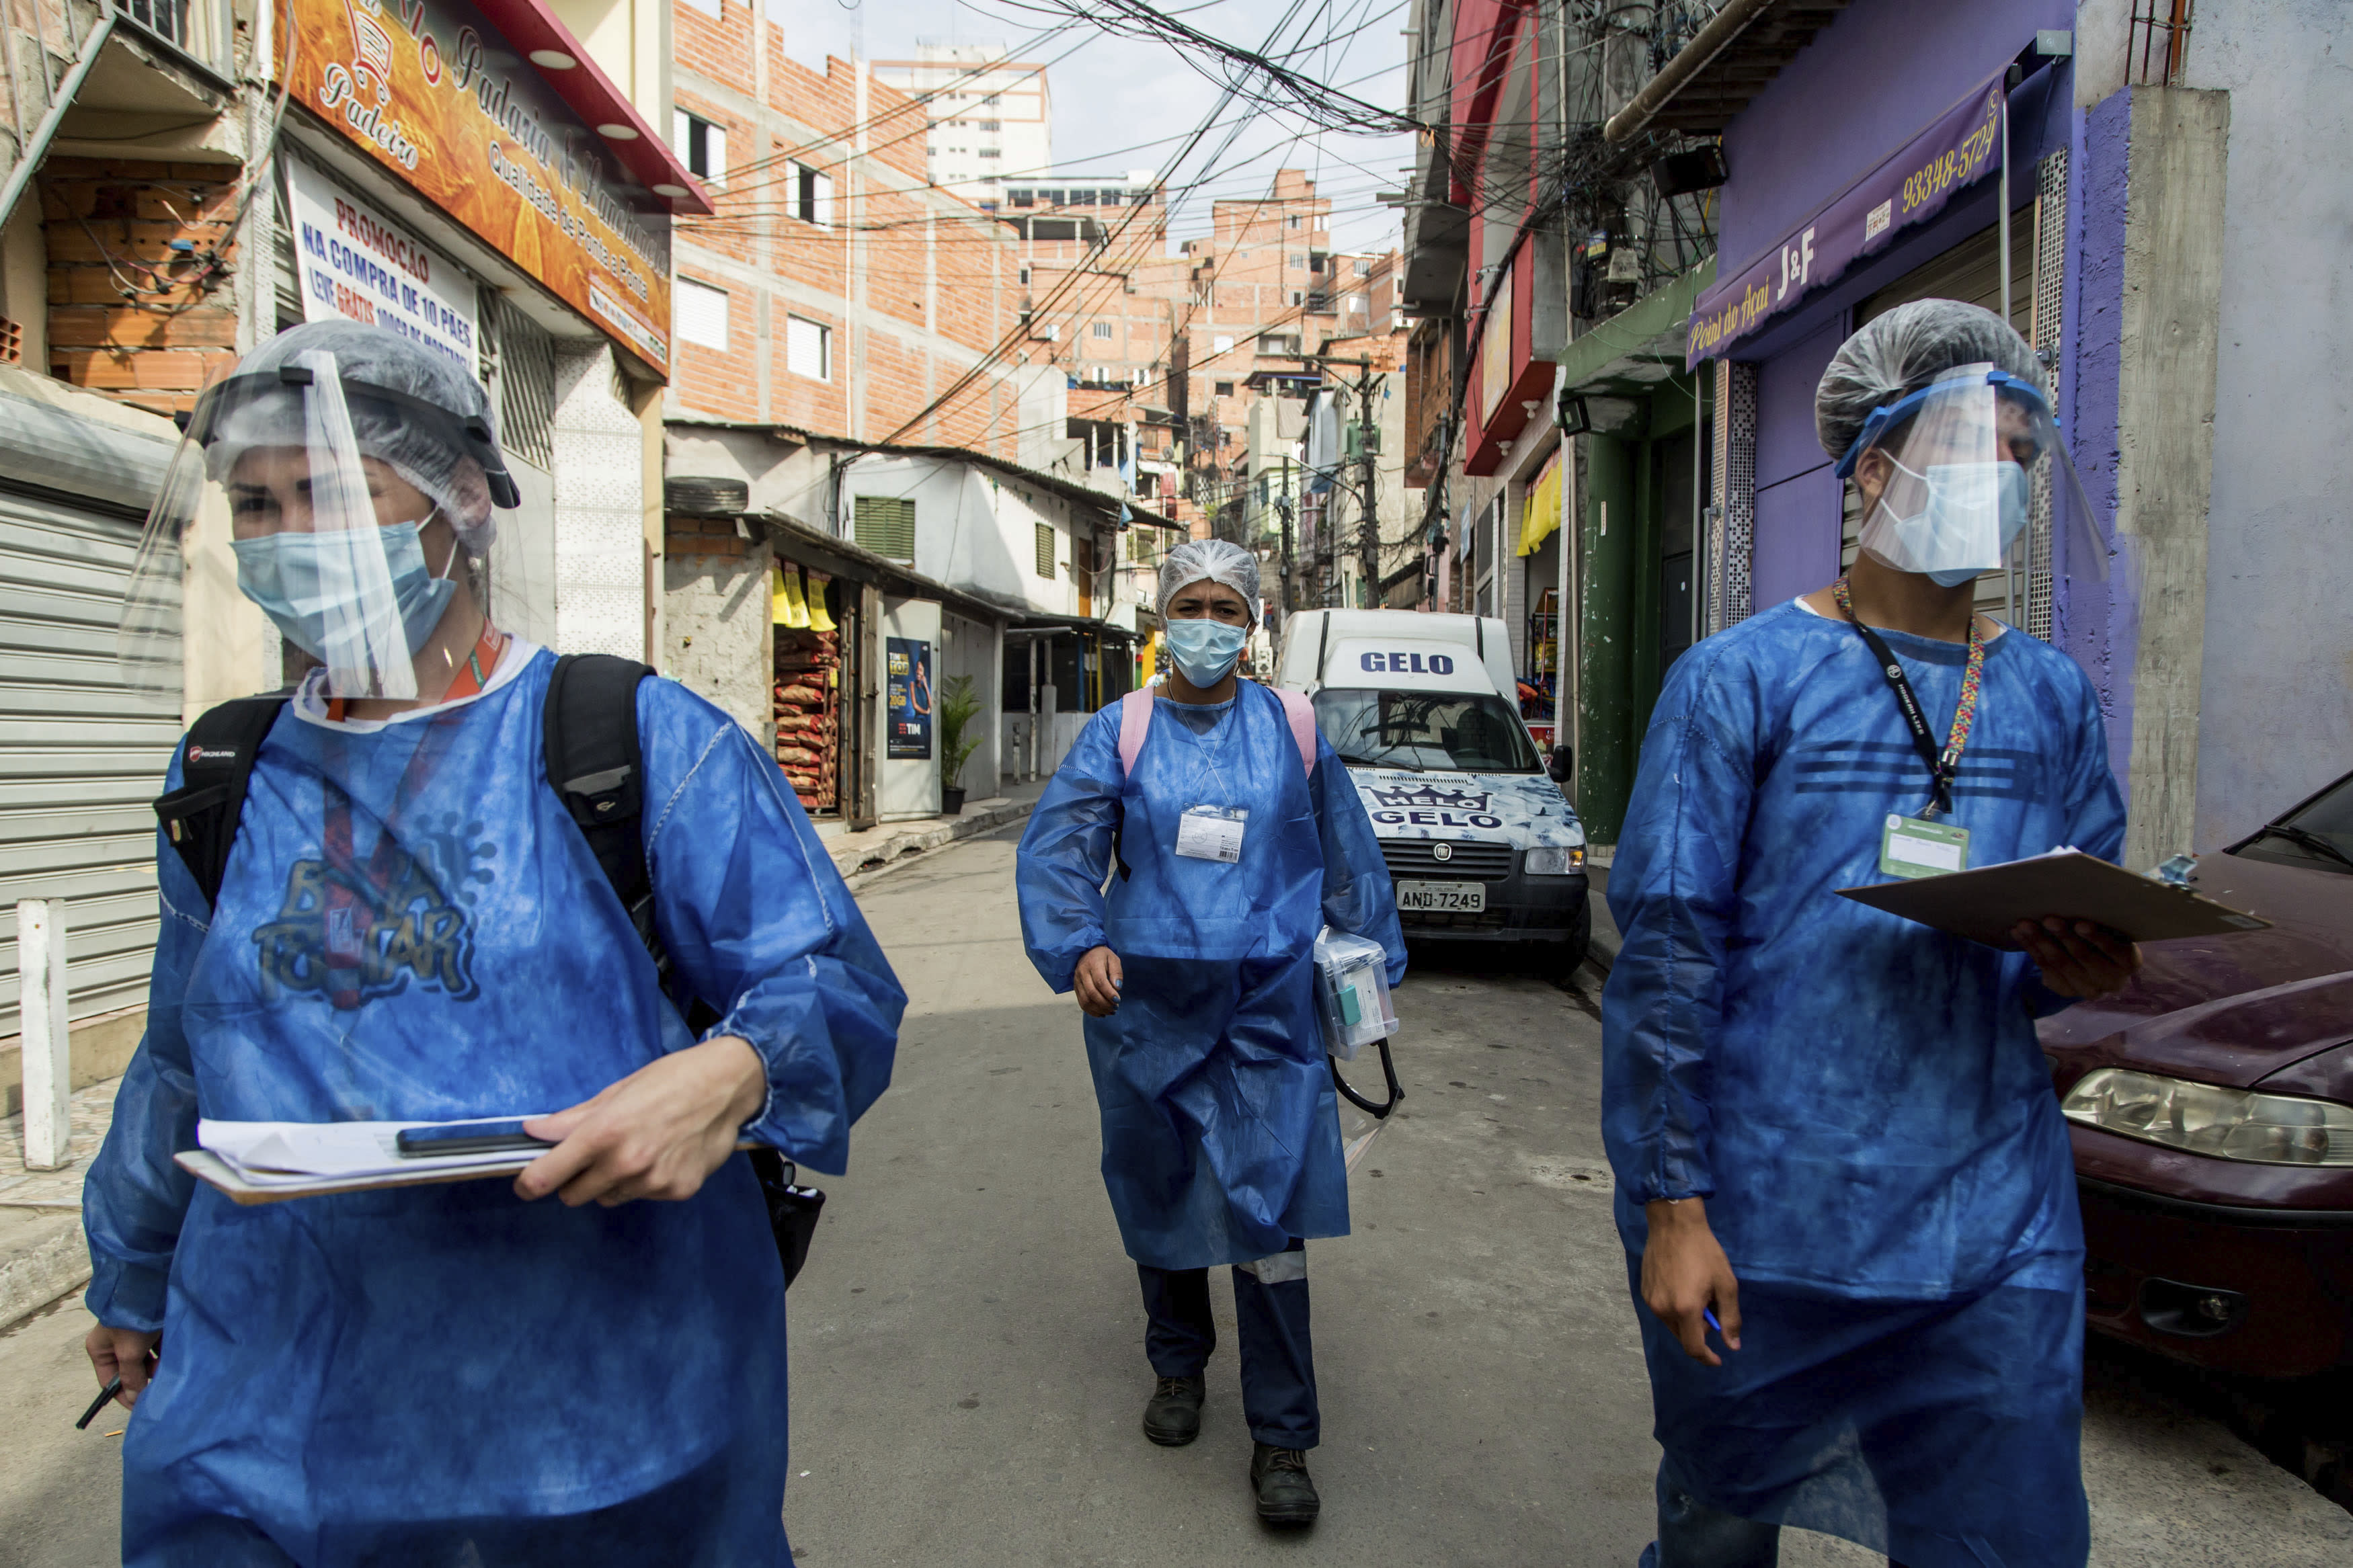 """Members of the """"Bora Testar"""" or Let's Test project, walk through the the Paraisopolis neighborhood of Sao Paulo, Brazil, Friday, Sept. 11, 2020. The project plans to test up to 600 people for COVID-19 in the low income neighborhood, and to expand to other vulnerable communities in the country, financed by crowdfunding and donations. (AP Photo/Carla Carniel)"""